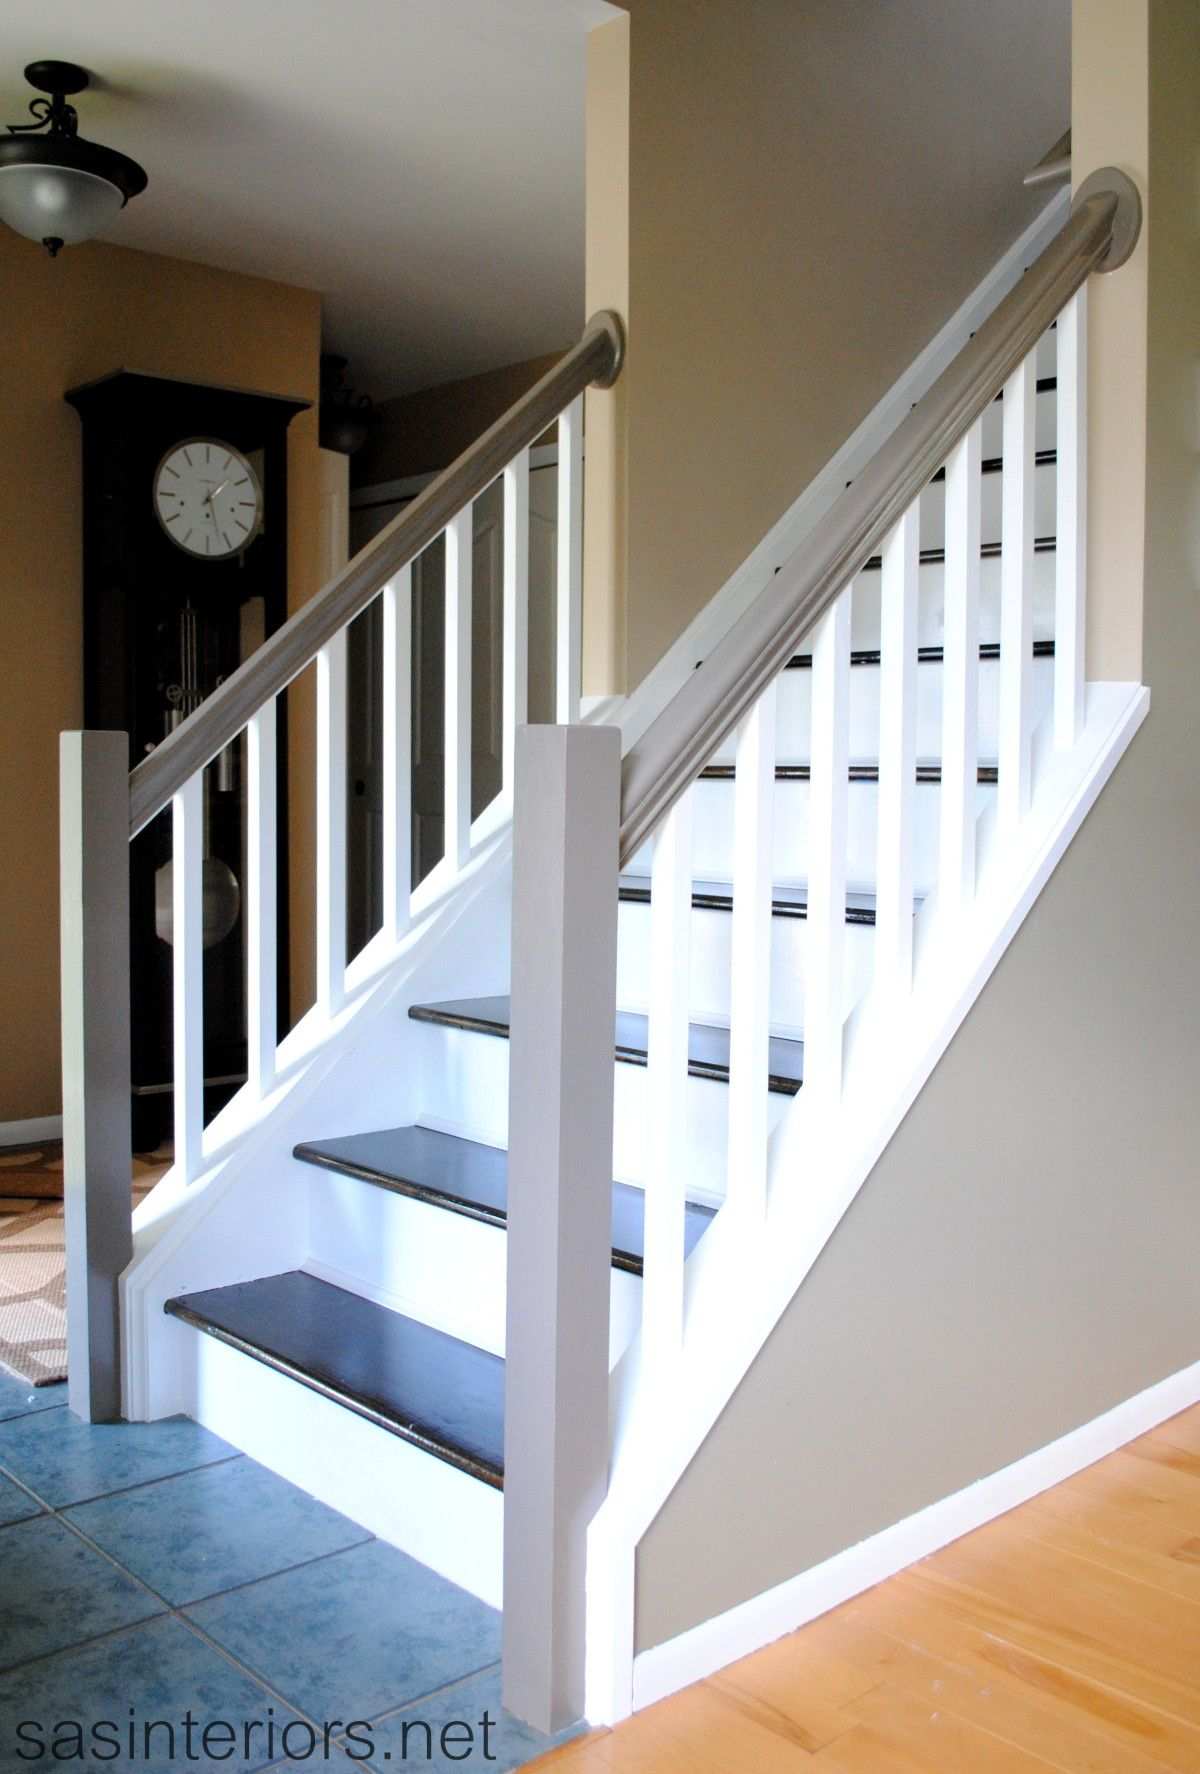 Staircase makeover final reveal diy basement pinterest for Diy staircase makeover